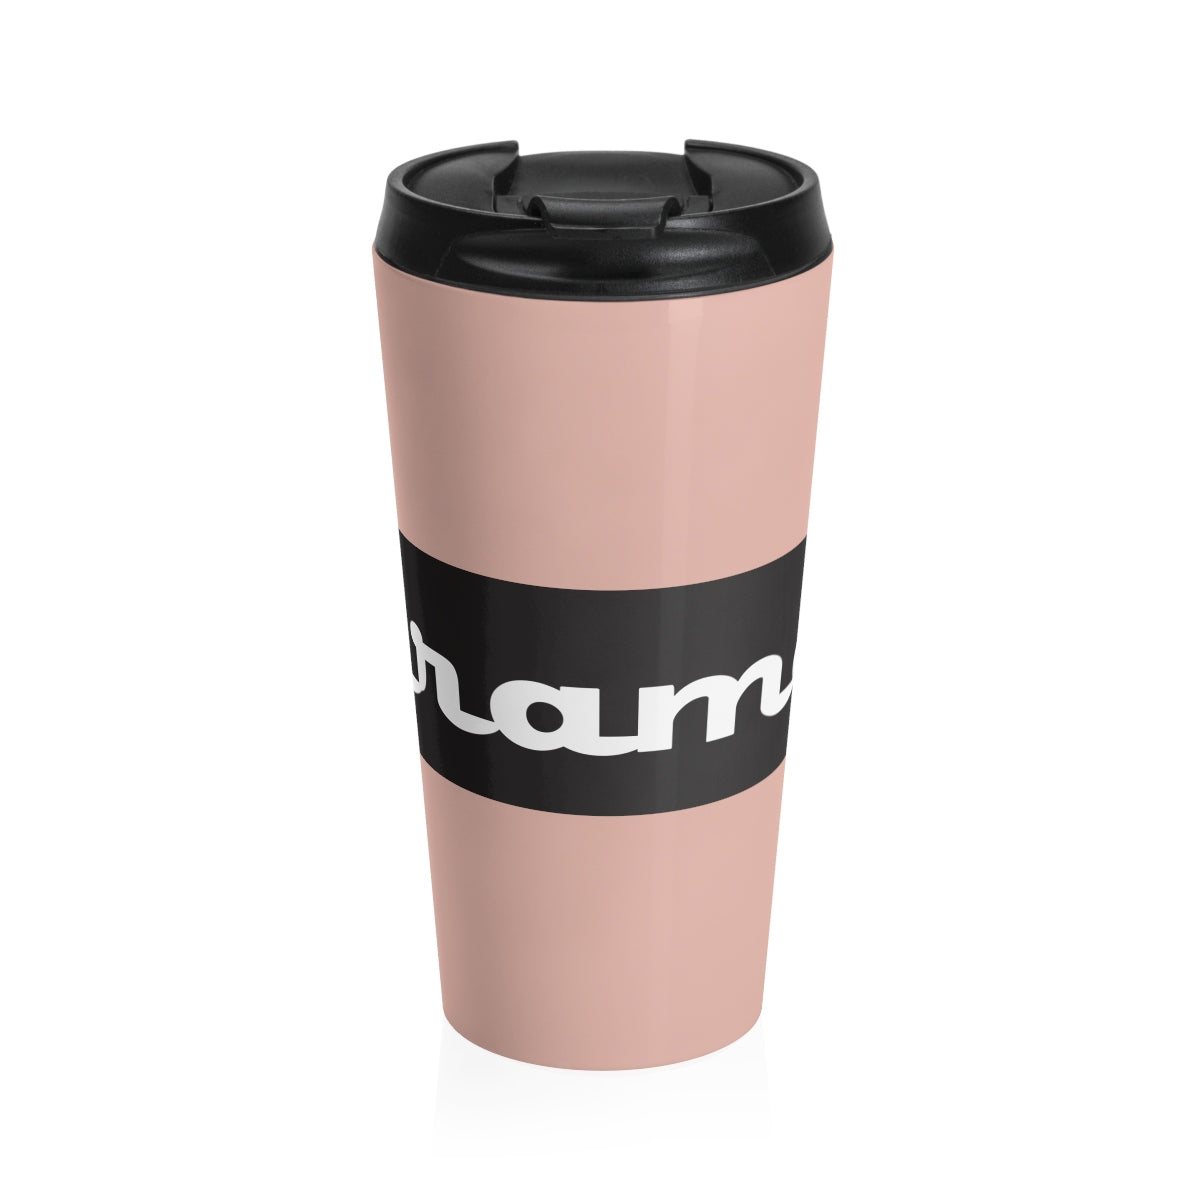 Miramar® Signature Collection Minillial Pink Stainless Steel Travel Mug